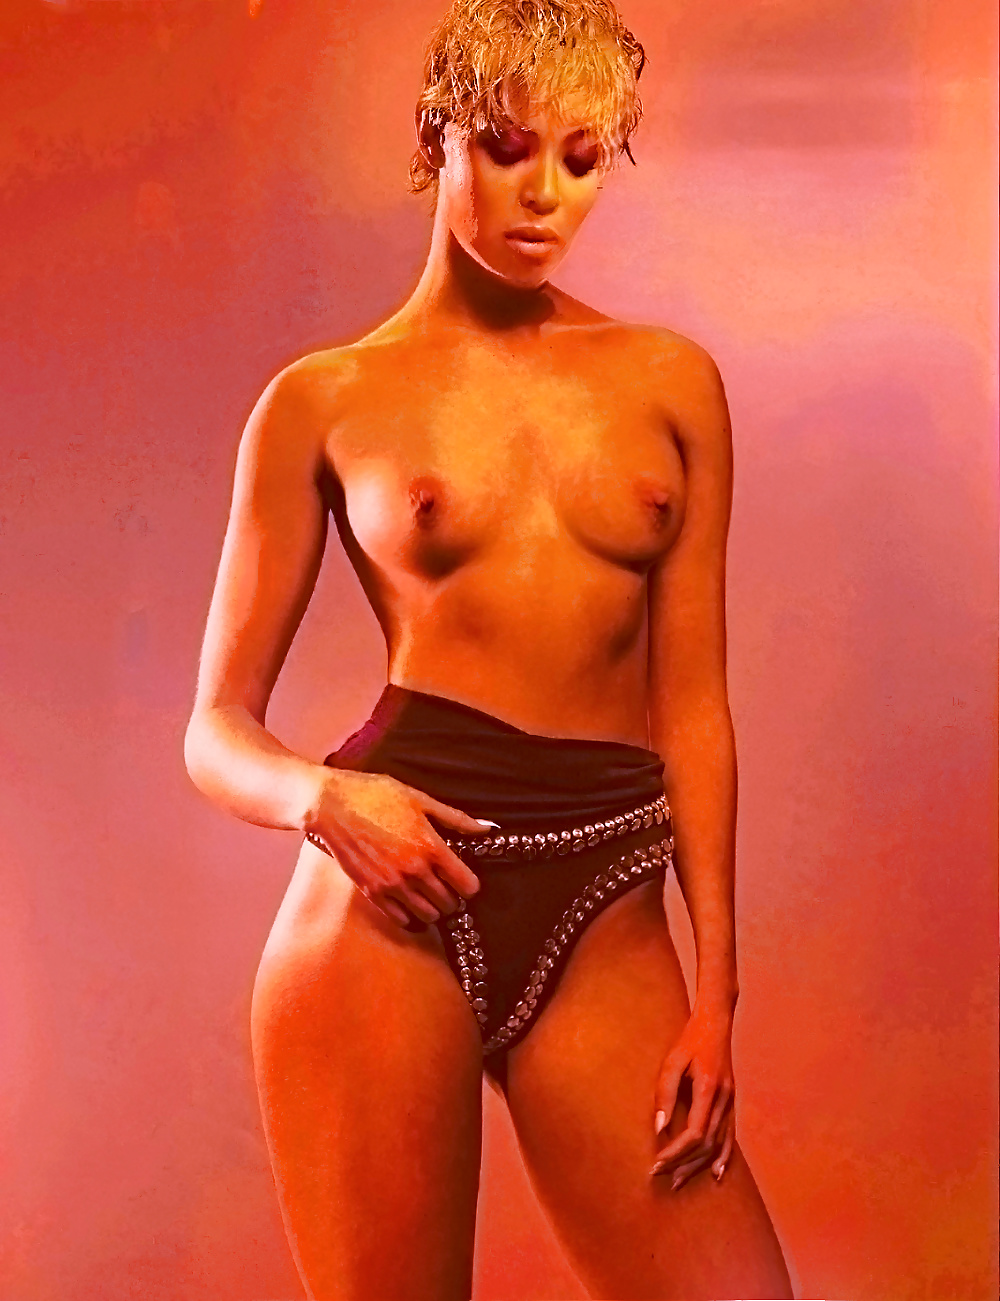 Beyonce Nude Video Outtakes 2 - 1 Pics - Xhamstercom-2631